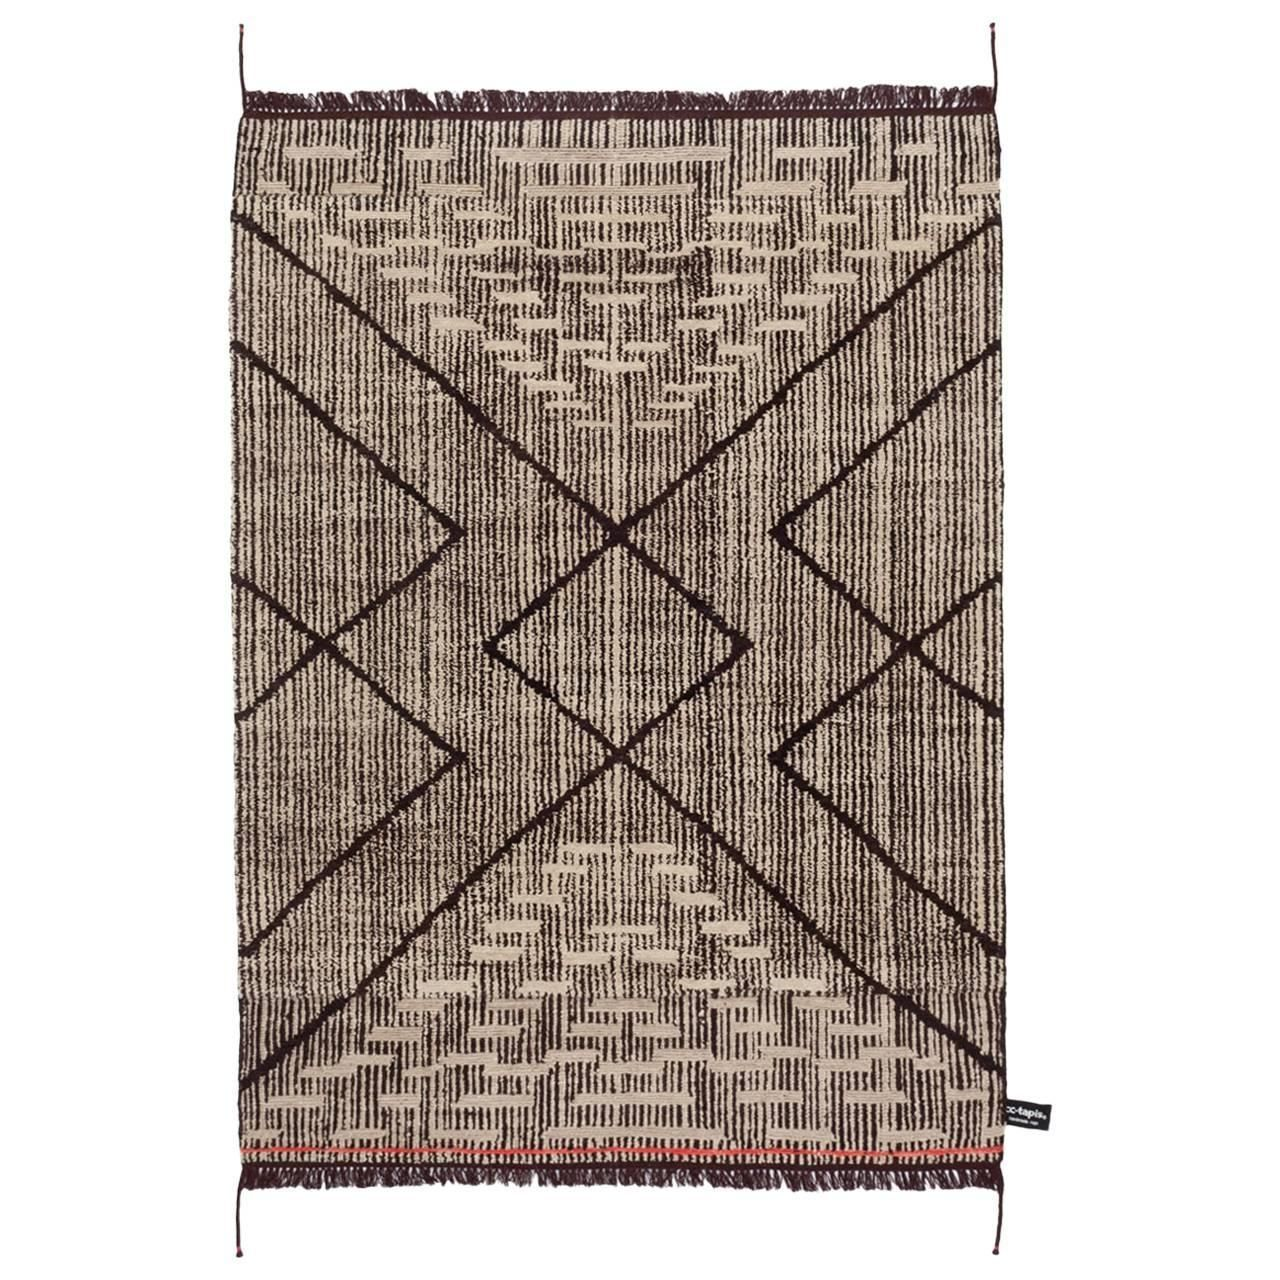 Primitive Weave Two Designed By Chiara Andreatti For Cc Tapis 1stdibs Com Rugs Rugs On Carpet Weaving